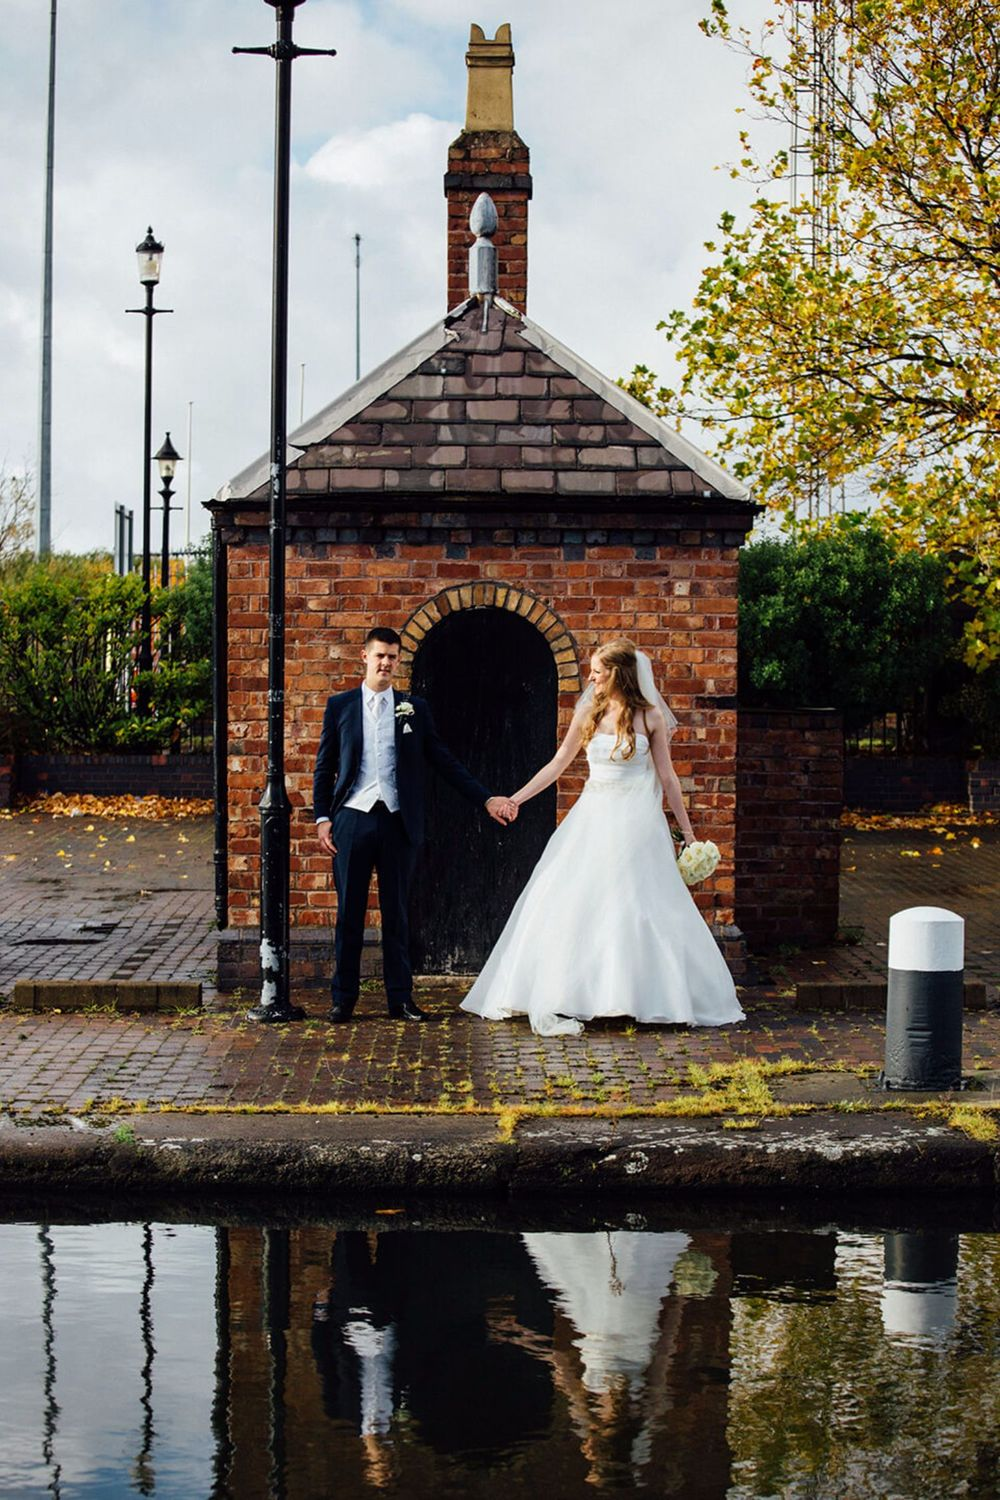 ELLESMERE PORT WEDDING PHOTOGRAPHER STEPHEN MCGOWAN 283.jpg